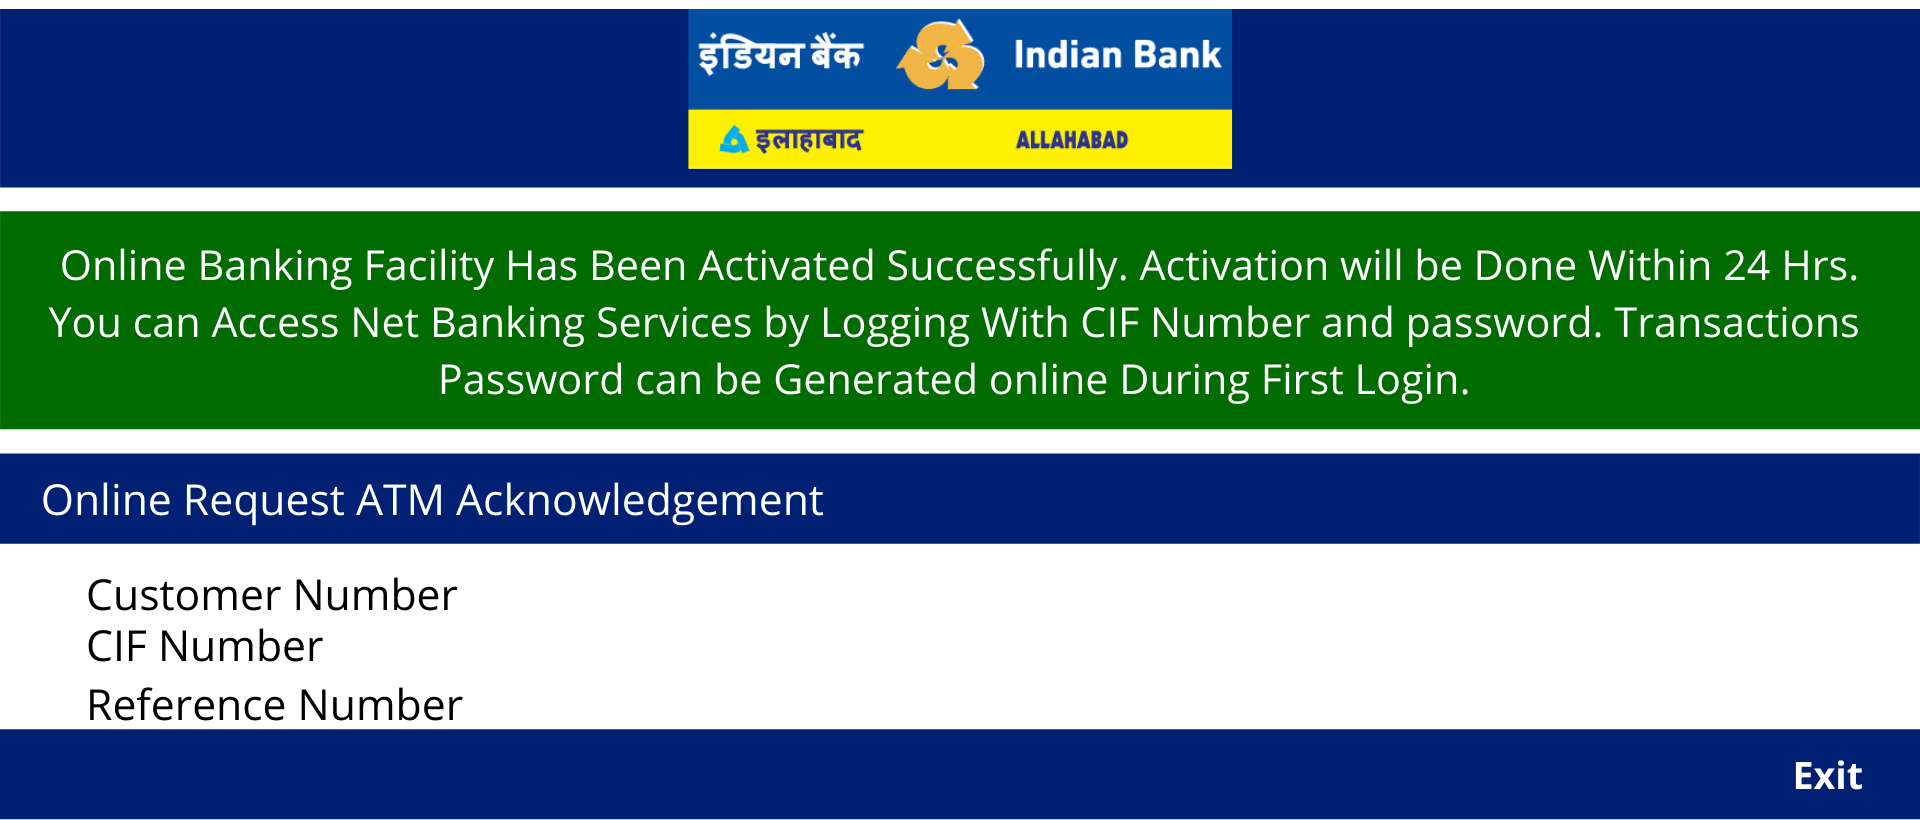 Indian bank Net Banking Activation